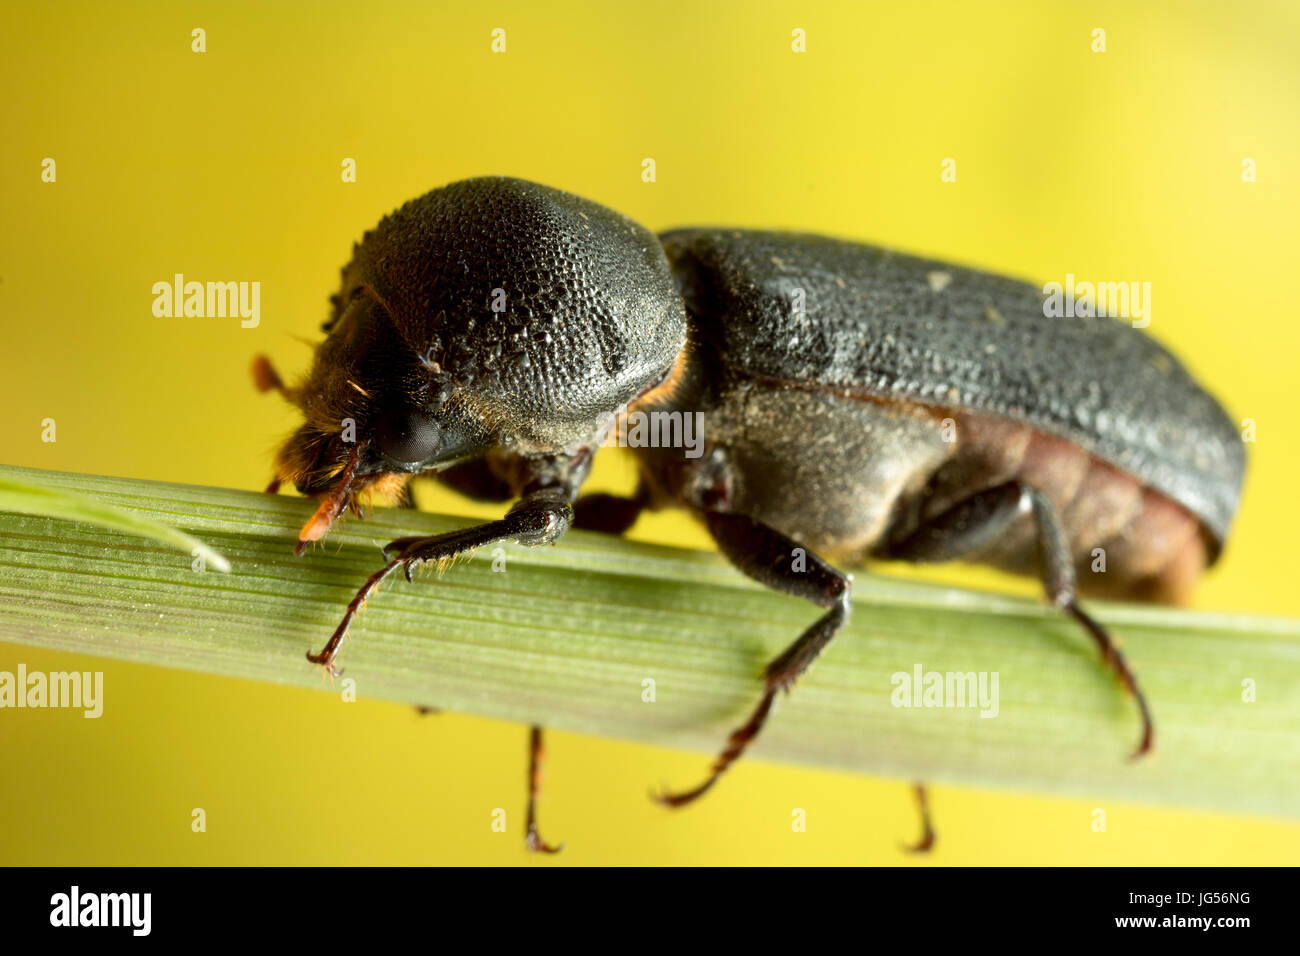 Black beetle macro photograph - Stock Image